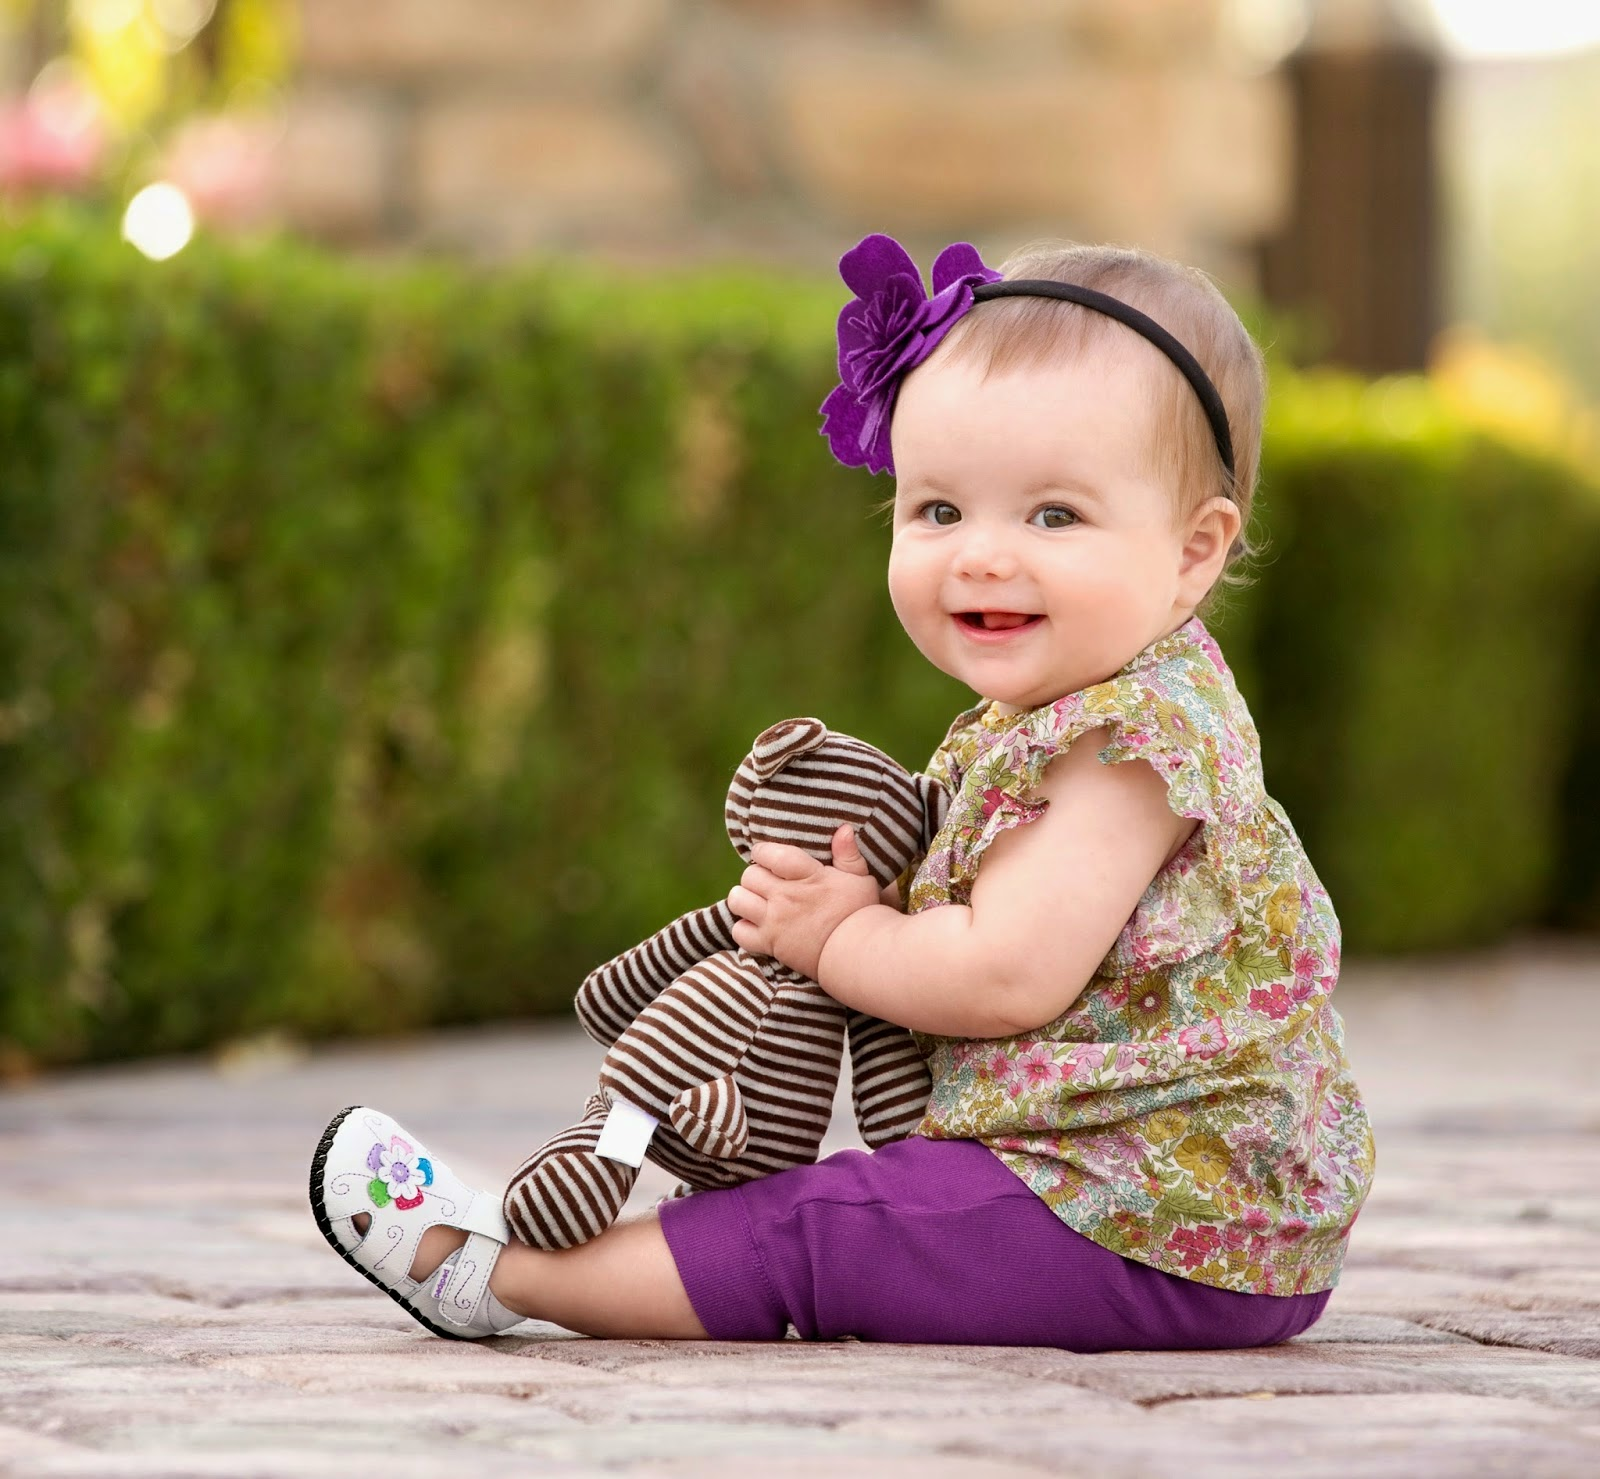 latest cute baby images - nandininzb